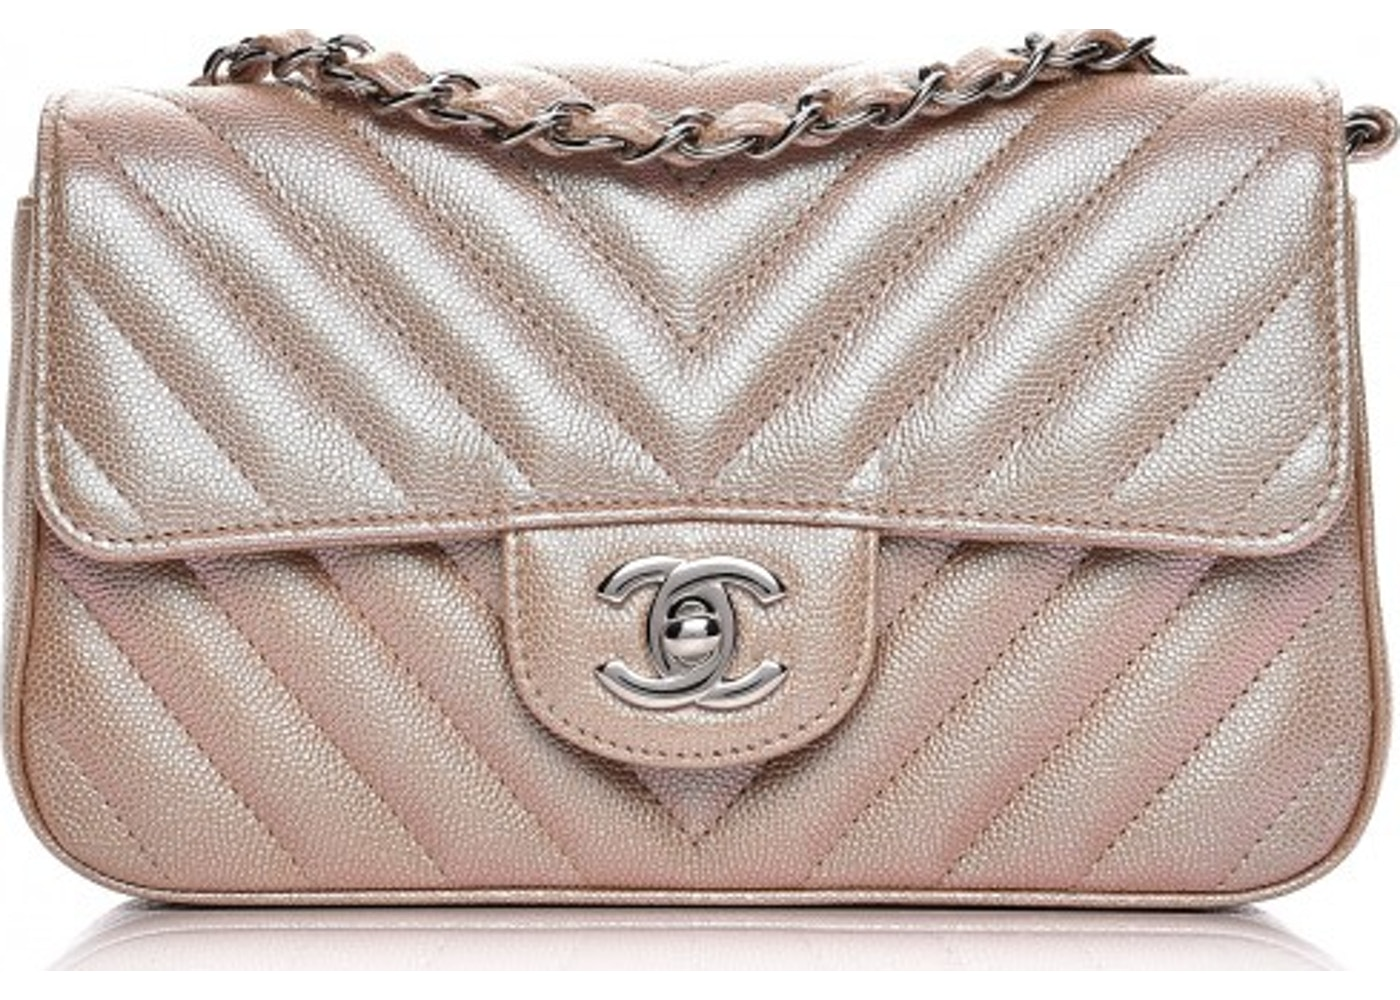 b7d9a3ca140b4d Buy & Sell Chanel Flap Handbags - Average Sale Price